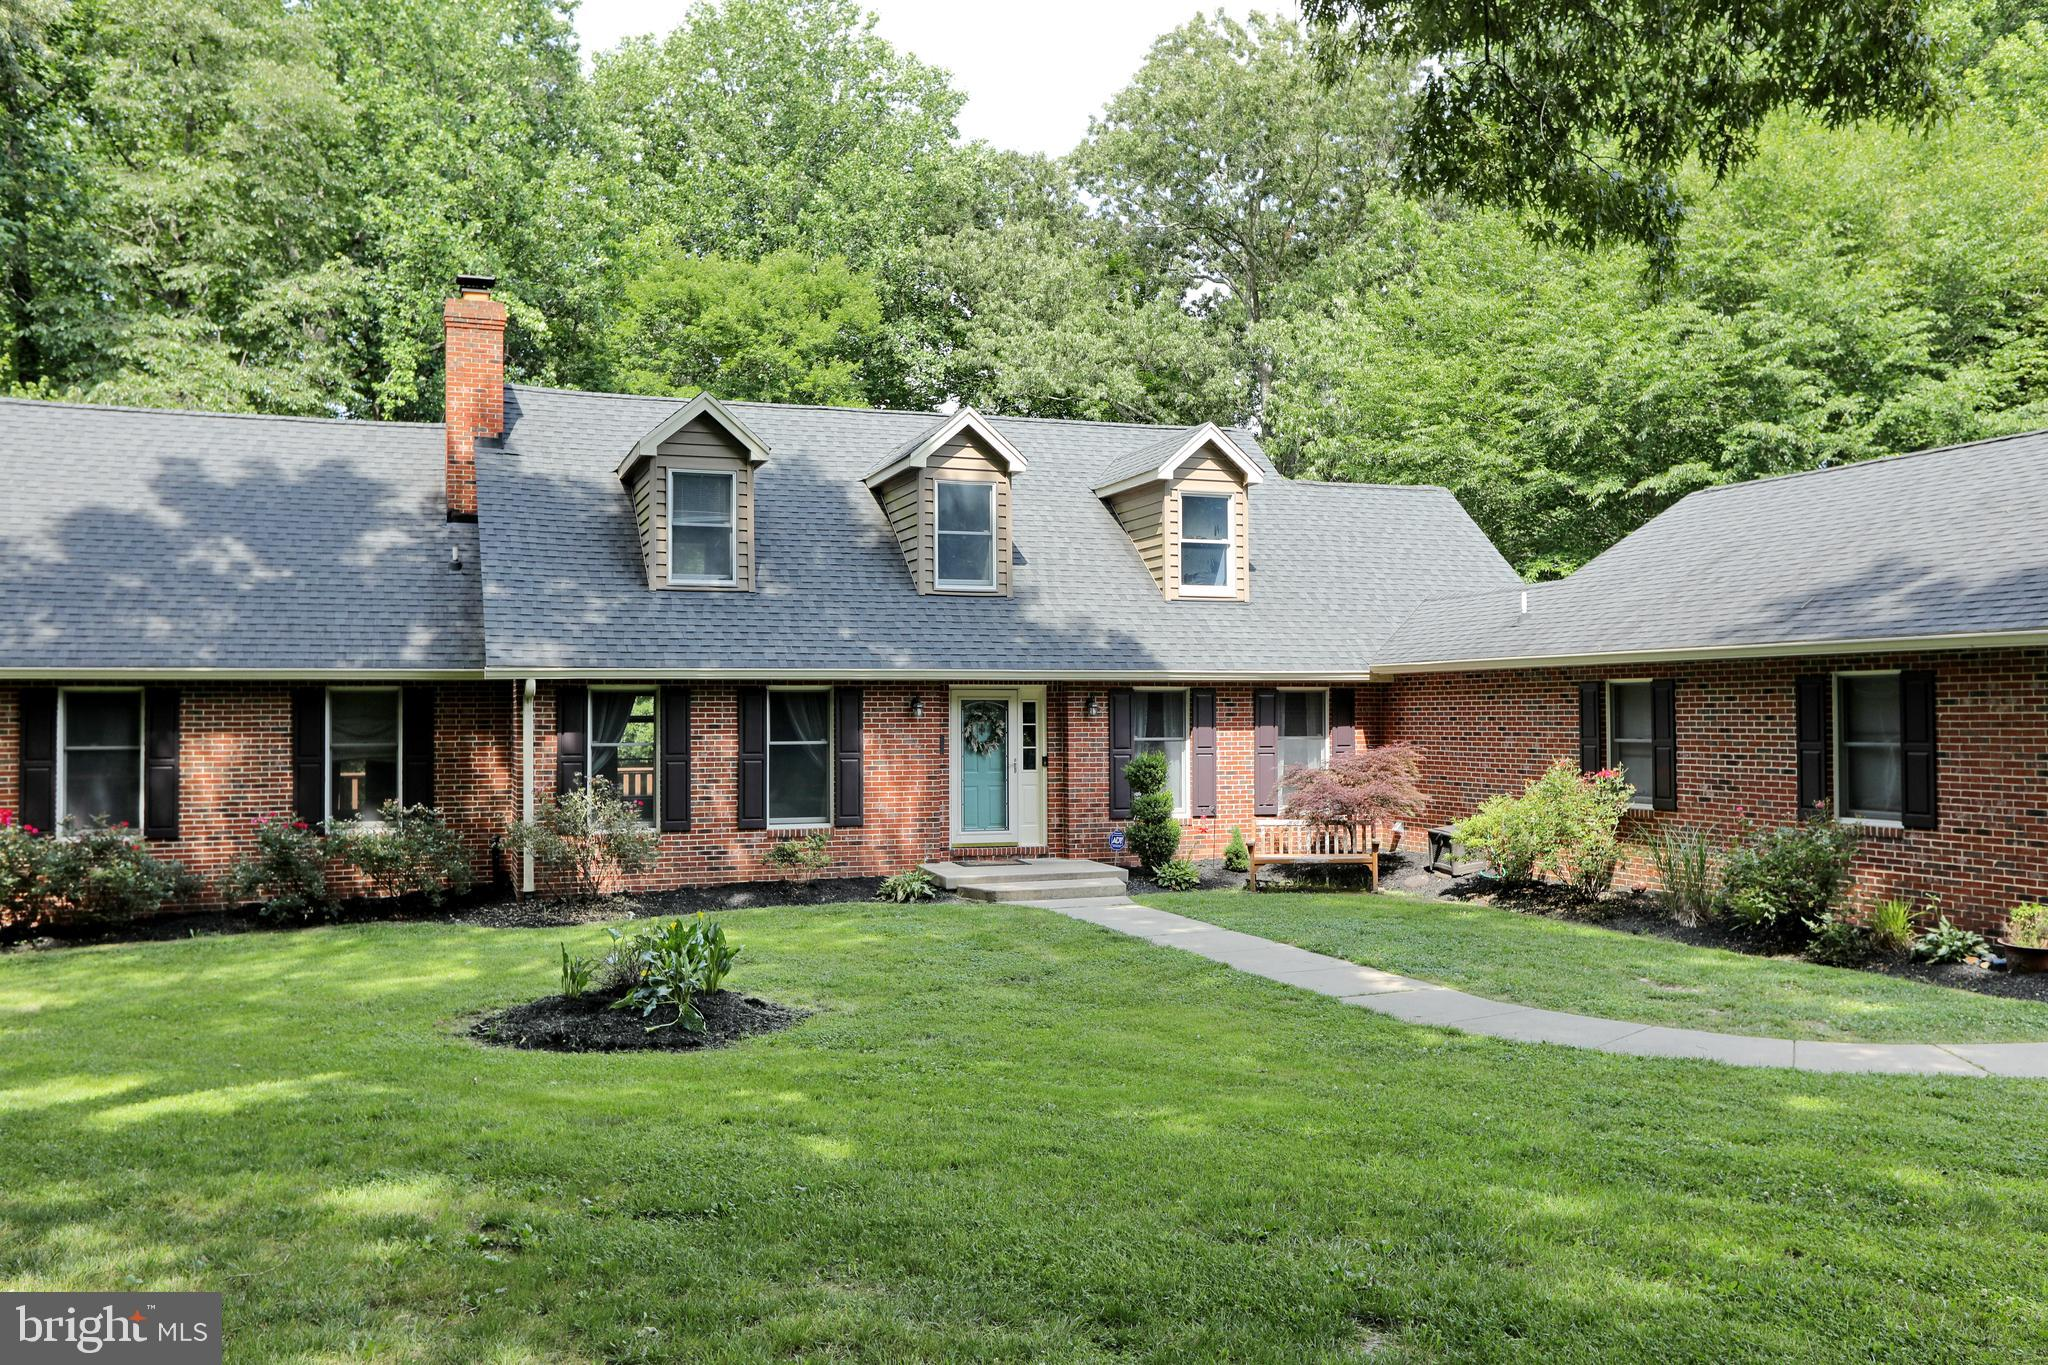 Gorgeous Brick Cape Cod on 5+ acres tucked away,  perfect lot if you're looking for peace & privacy.